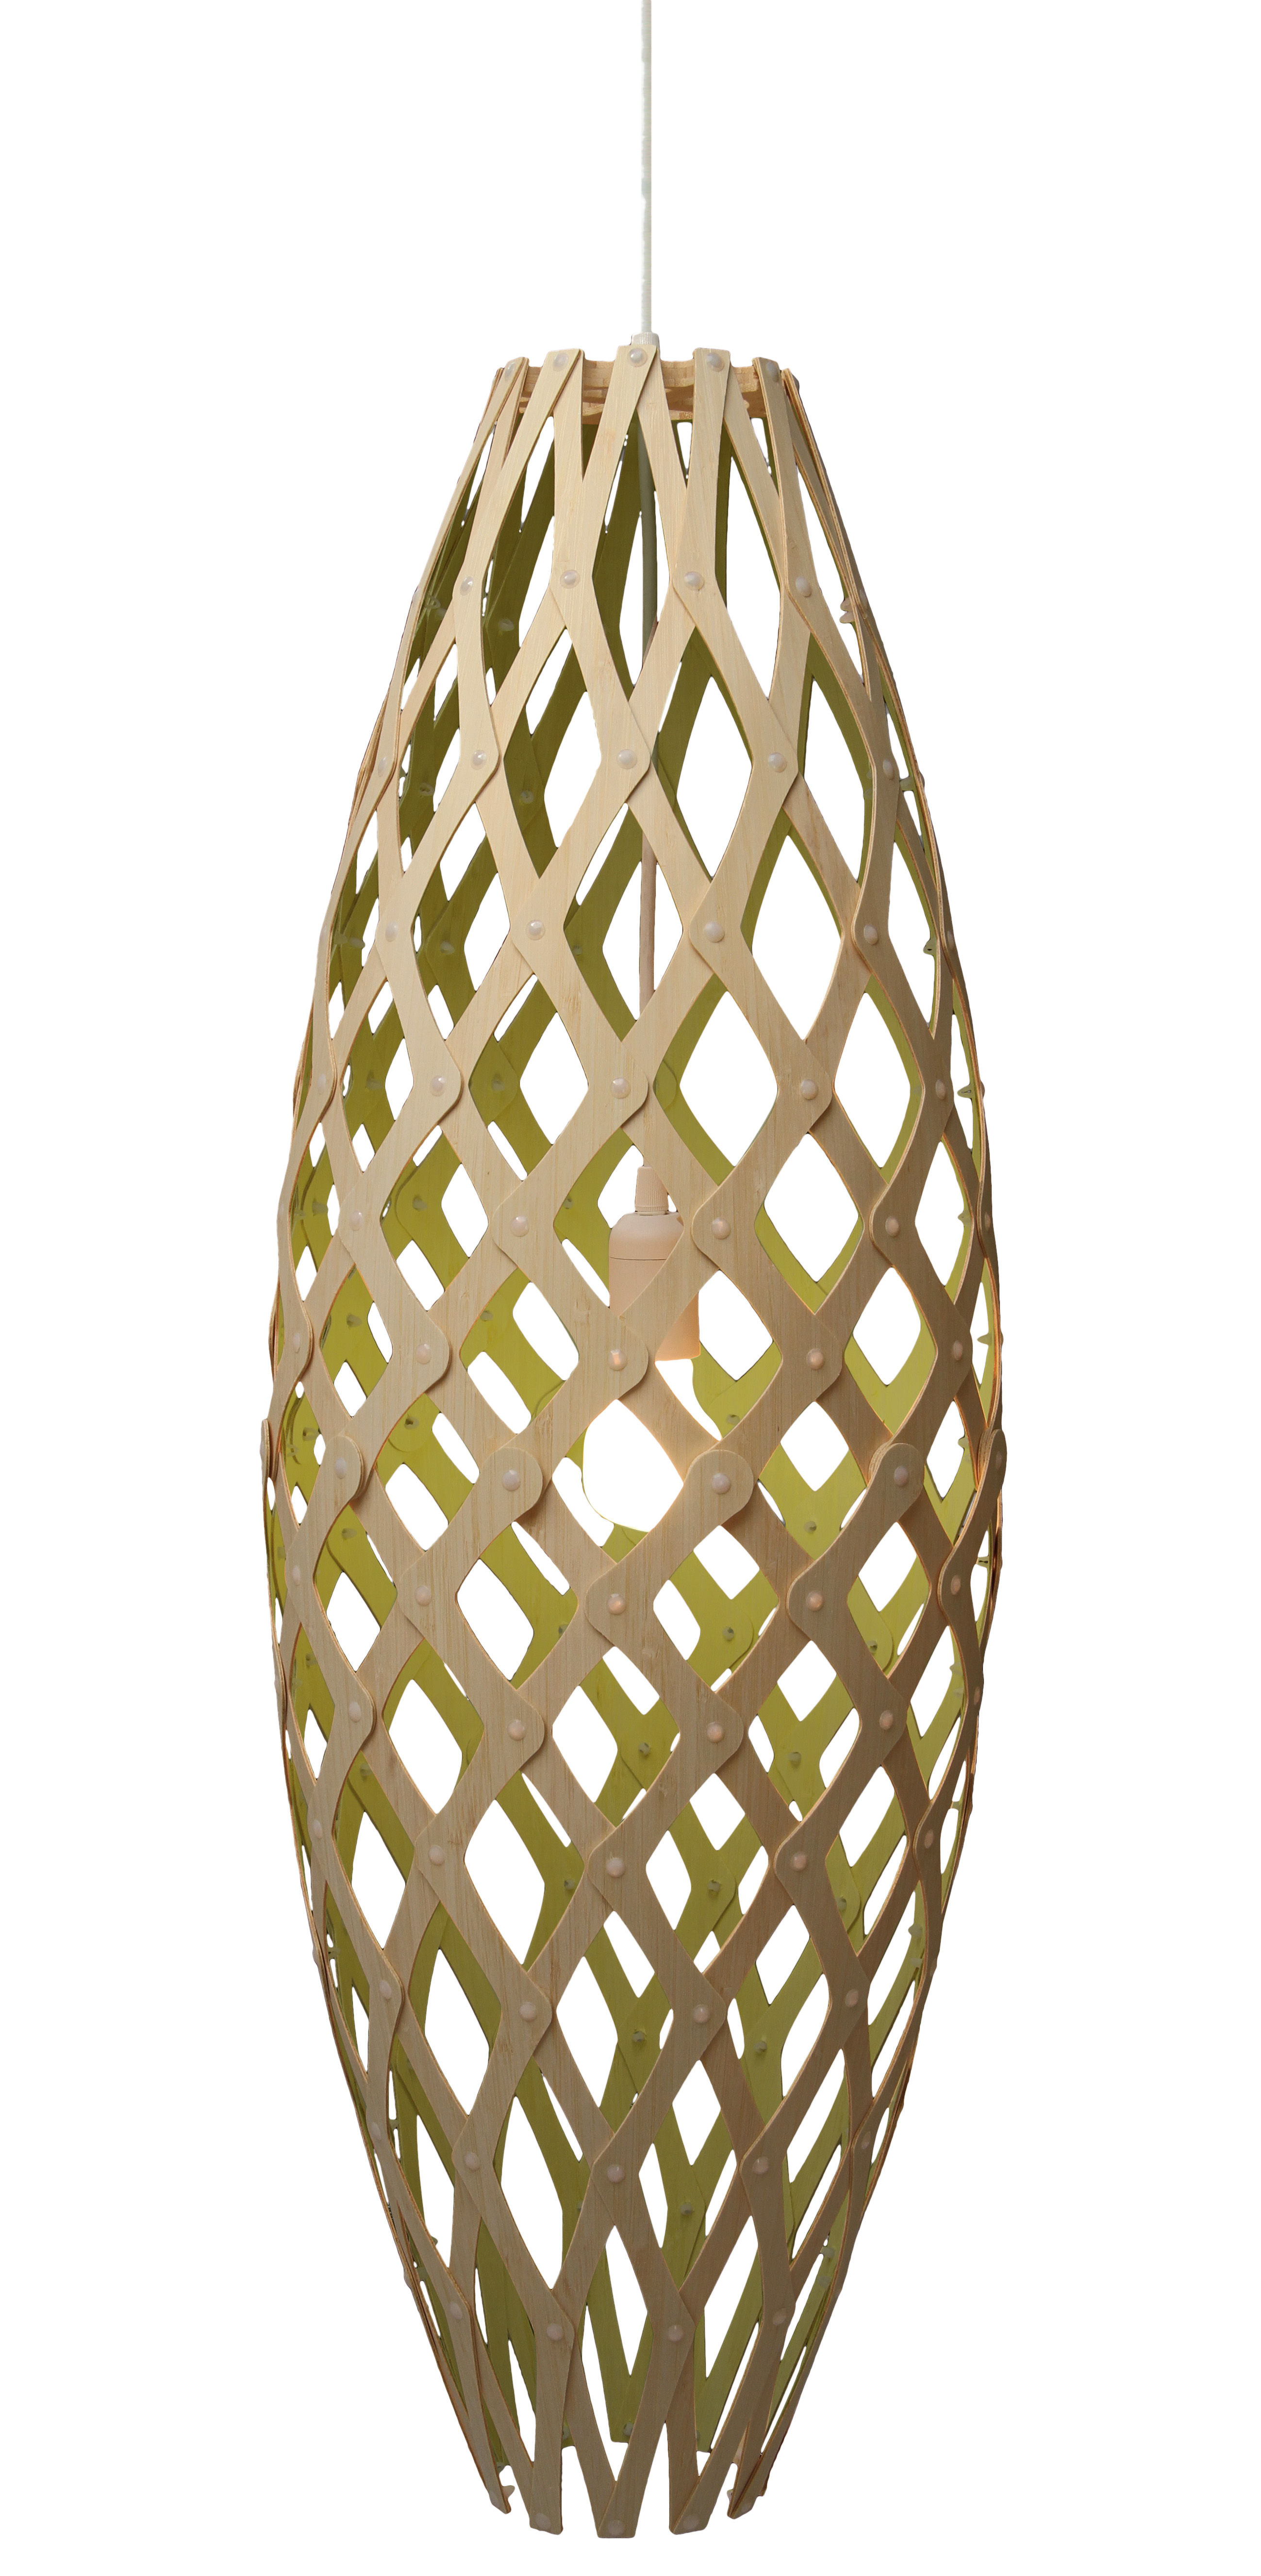 Lighting - Pendant Lighting - Hinaki Pendant - H 90 cm - Two-coloured by David Trubridge - Lime green / natural wood - Bamboo